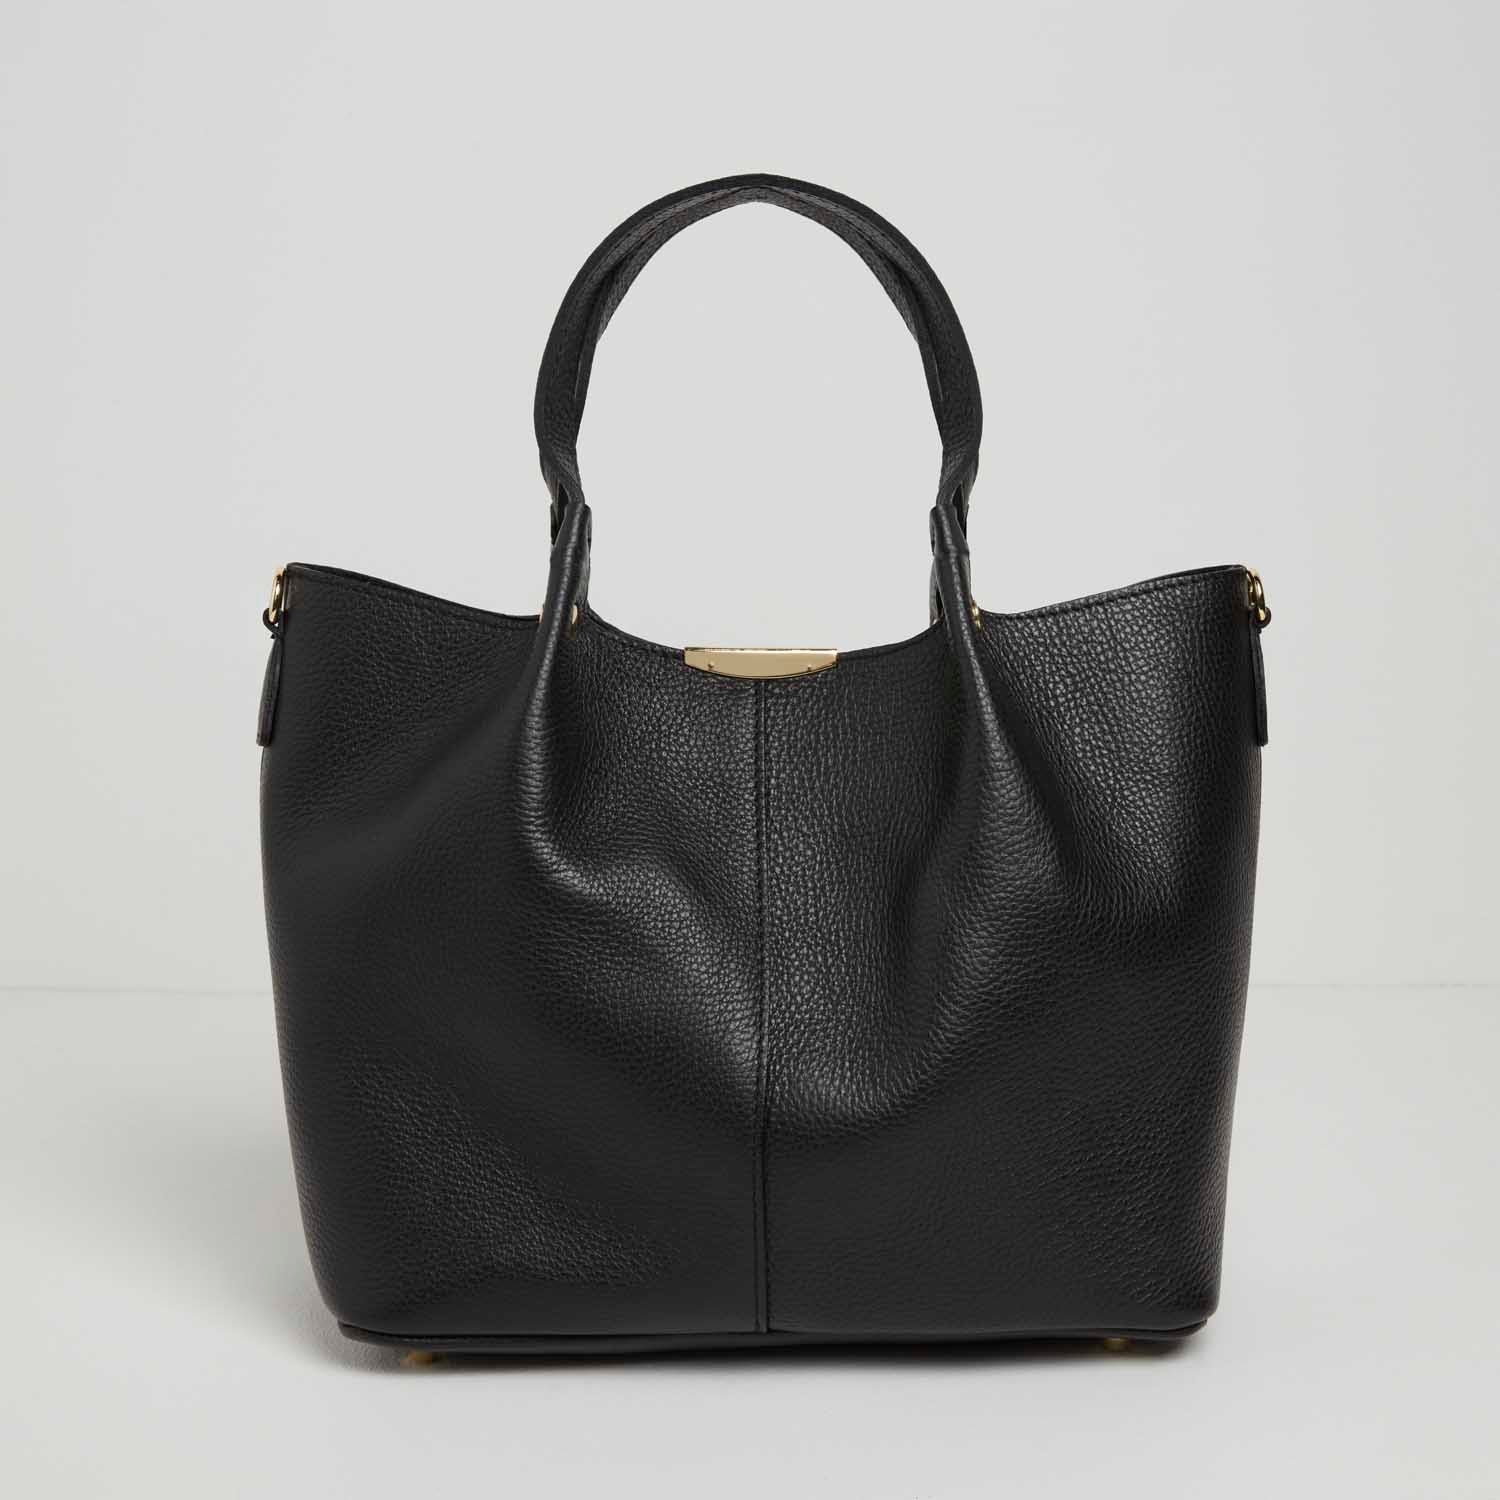 Nola Leather Shoulder Bag